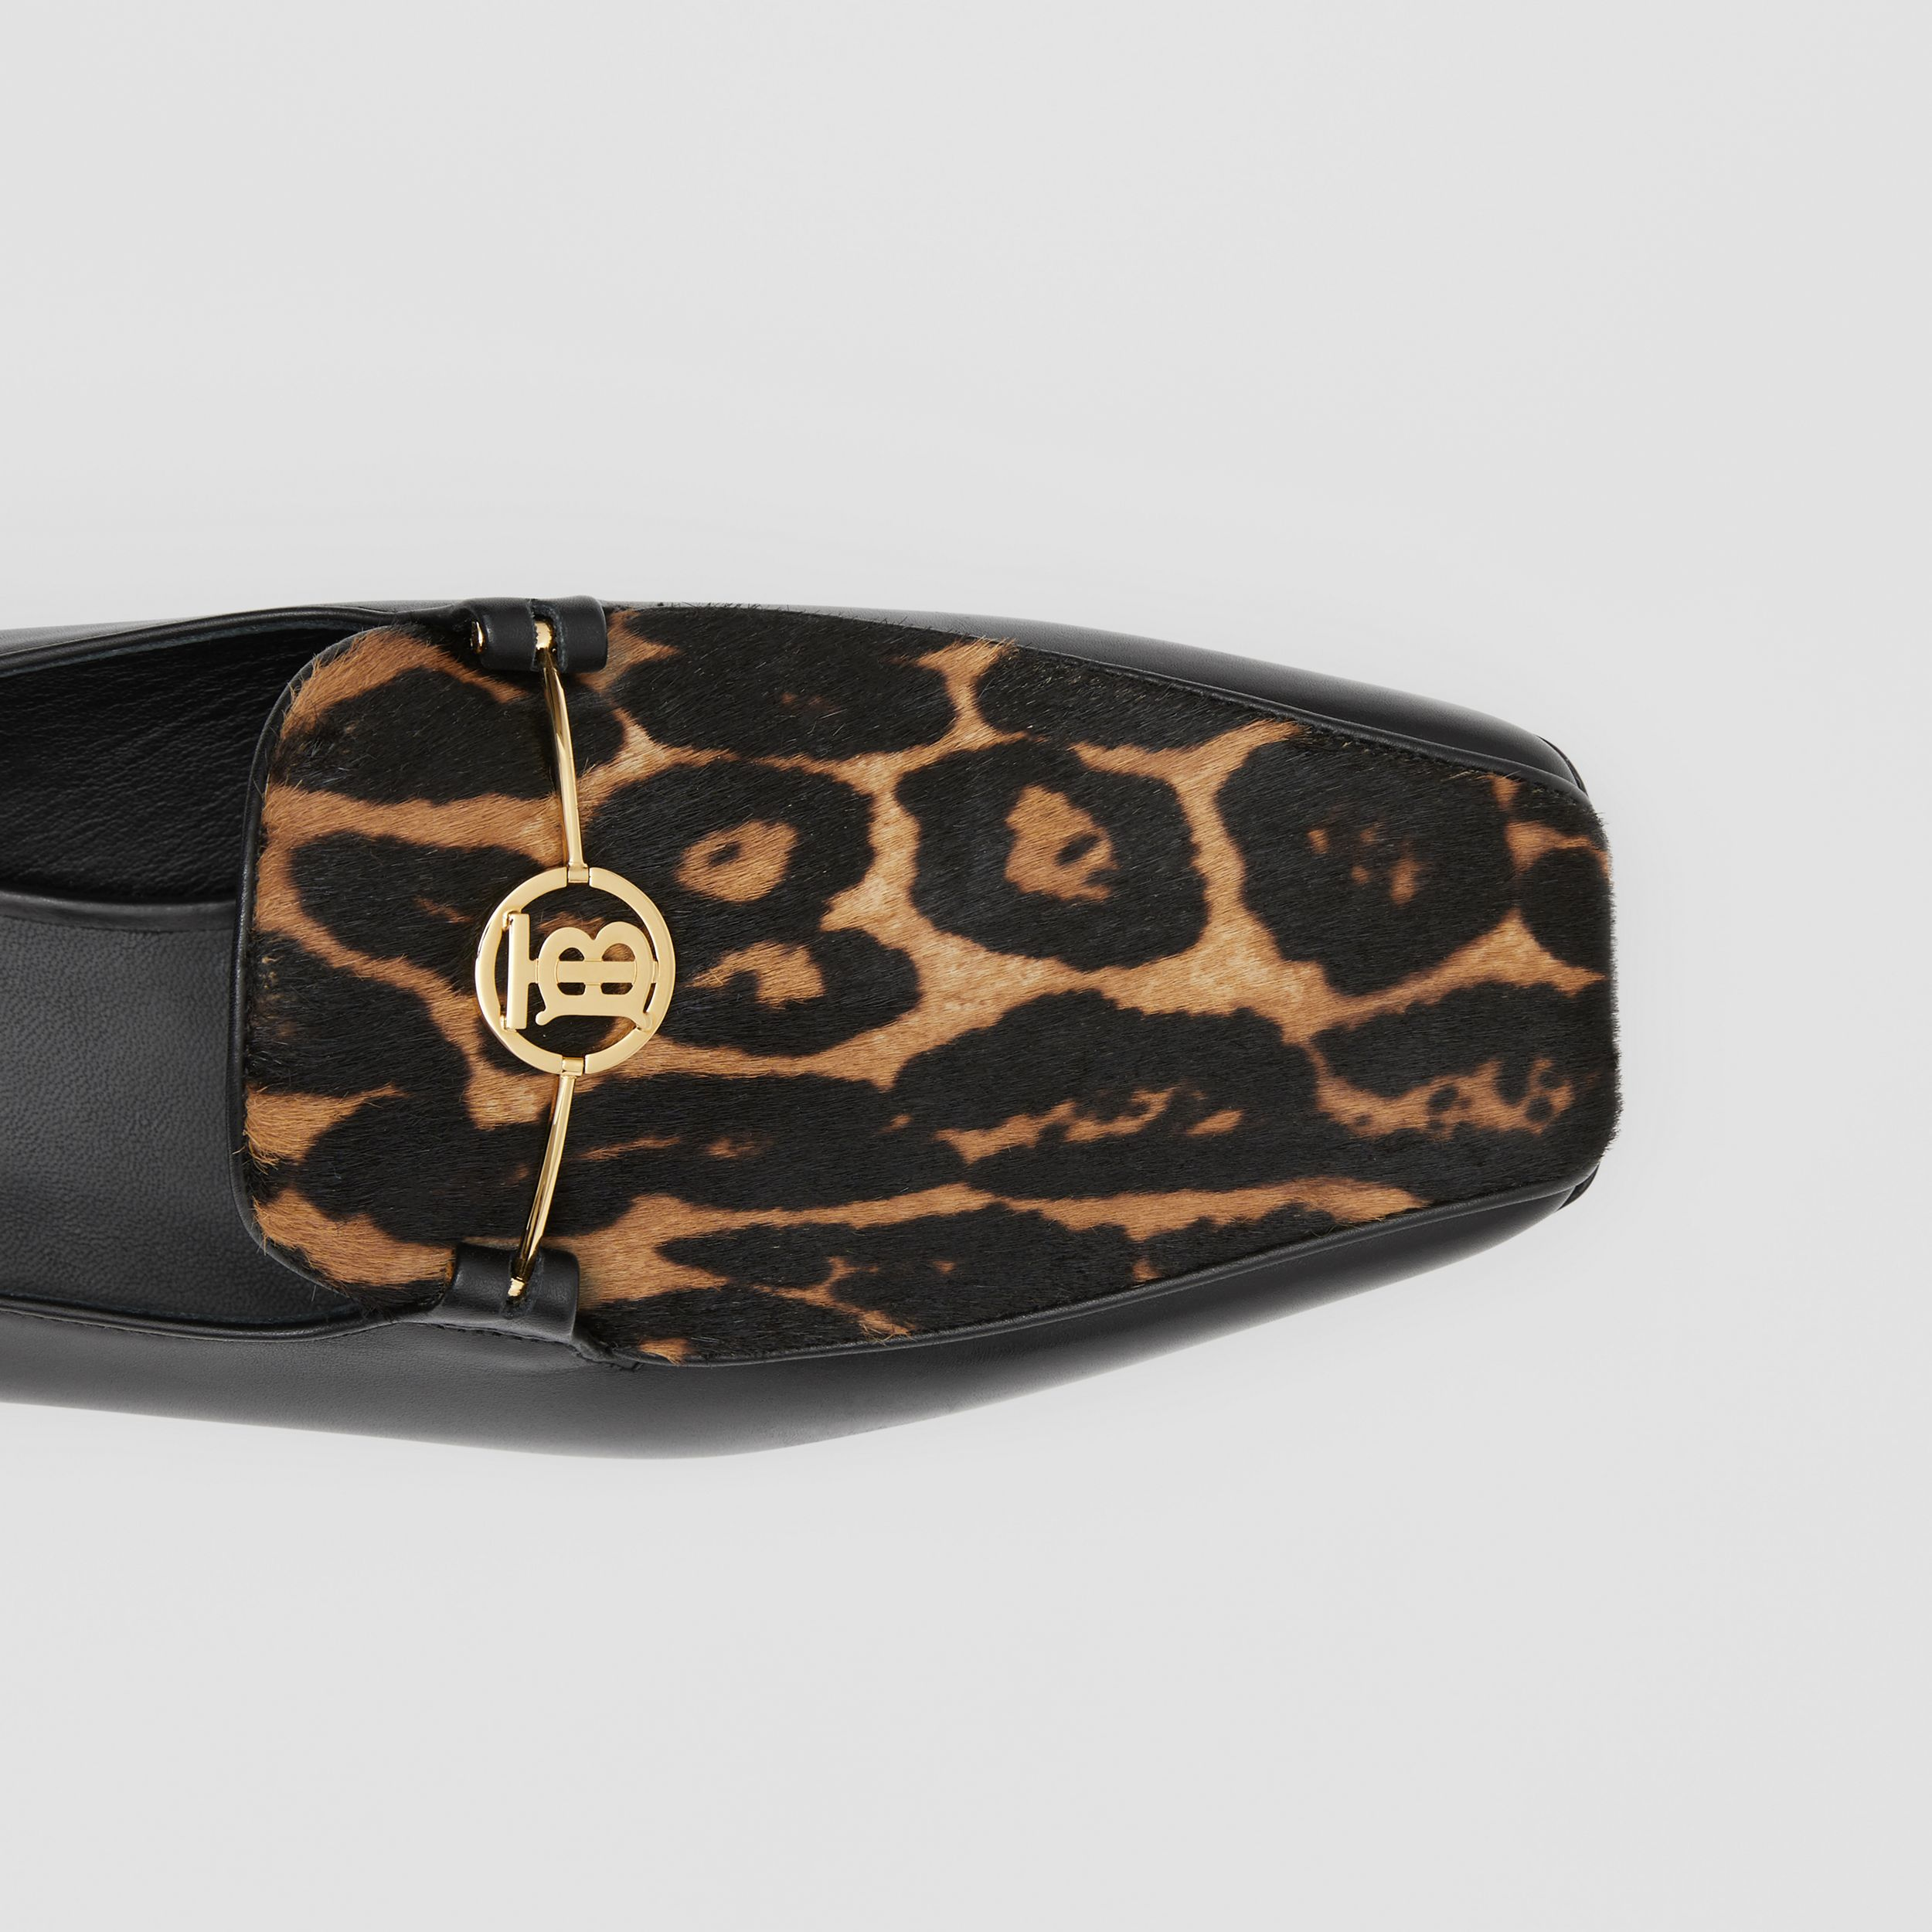 Leopard Print Calf Hair and Leather Loafers in Black/leopard - Women | Burberry United States - 2